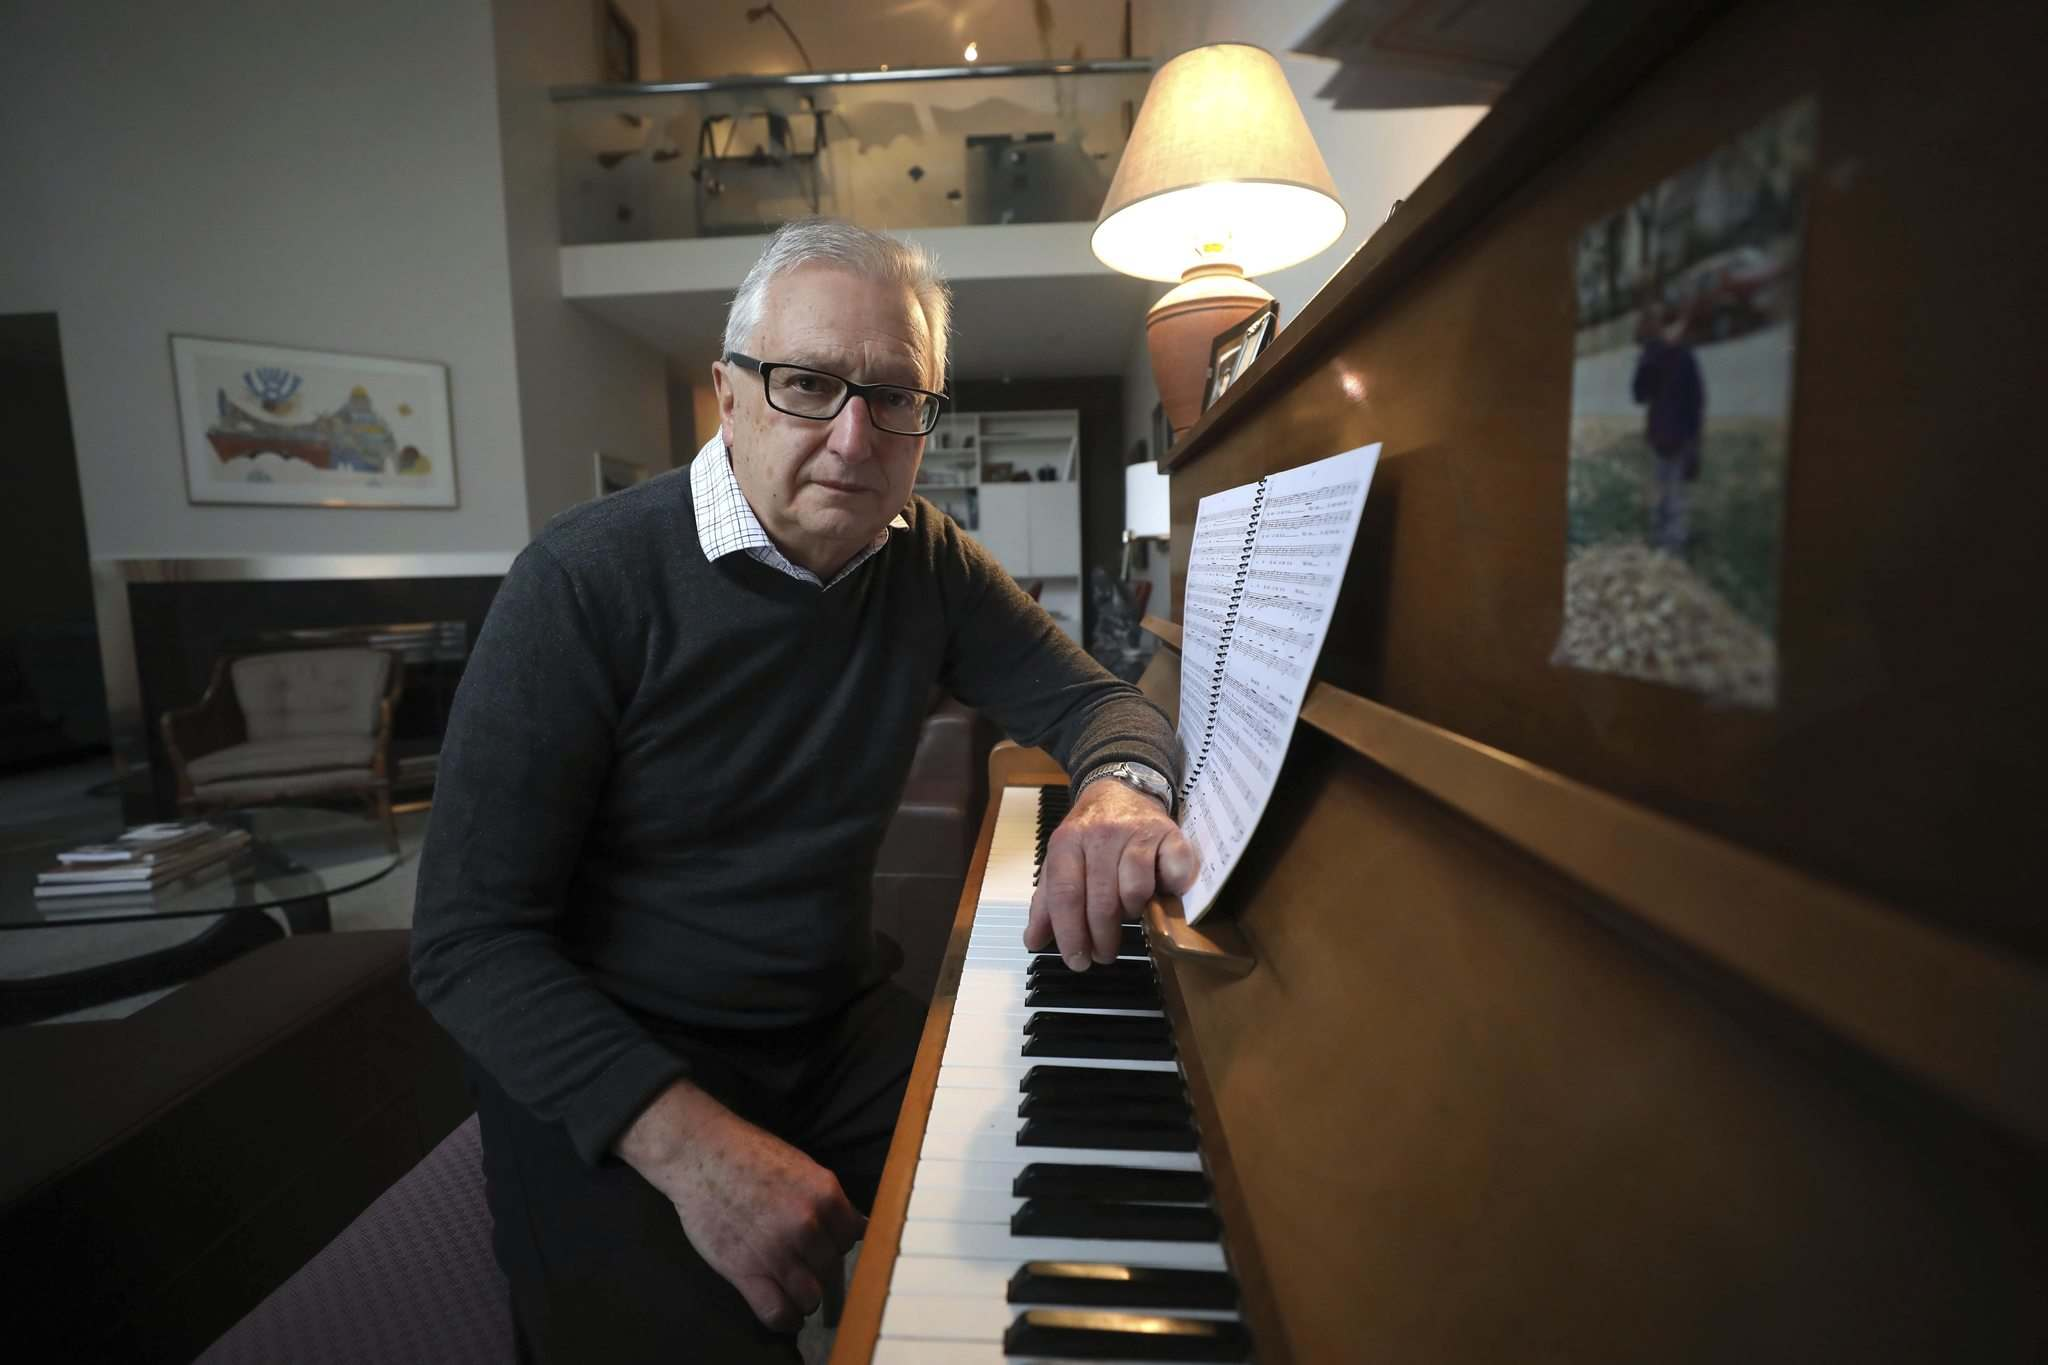 RUTH BONNEVILLE / WINNIPEG FREE PRESS</p><p>Composer Sid Rabinovitch wrote Eddy's Story, which honours Holocaust survivor Eddy Sterk's family members who died in the Second World War. The story is told through narration and music.</p></p>